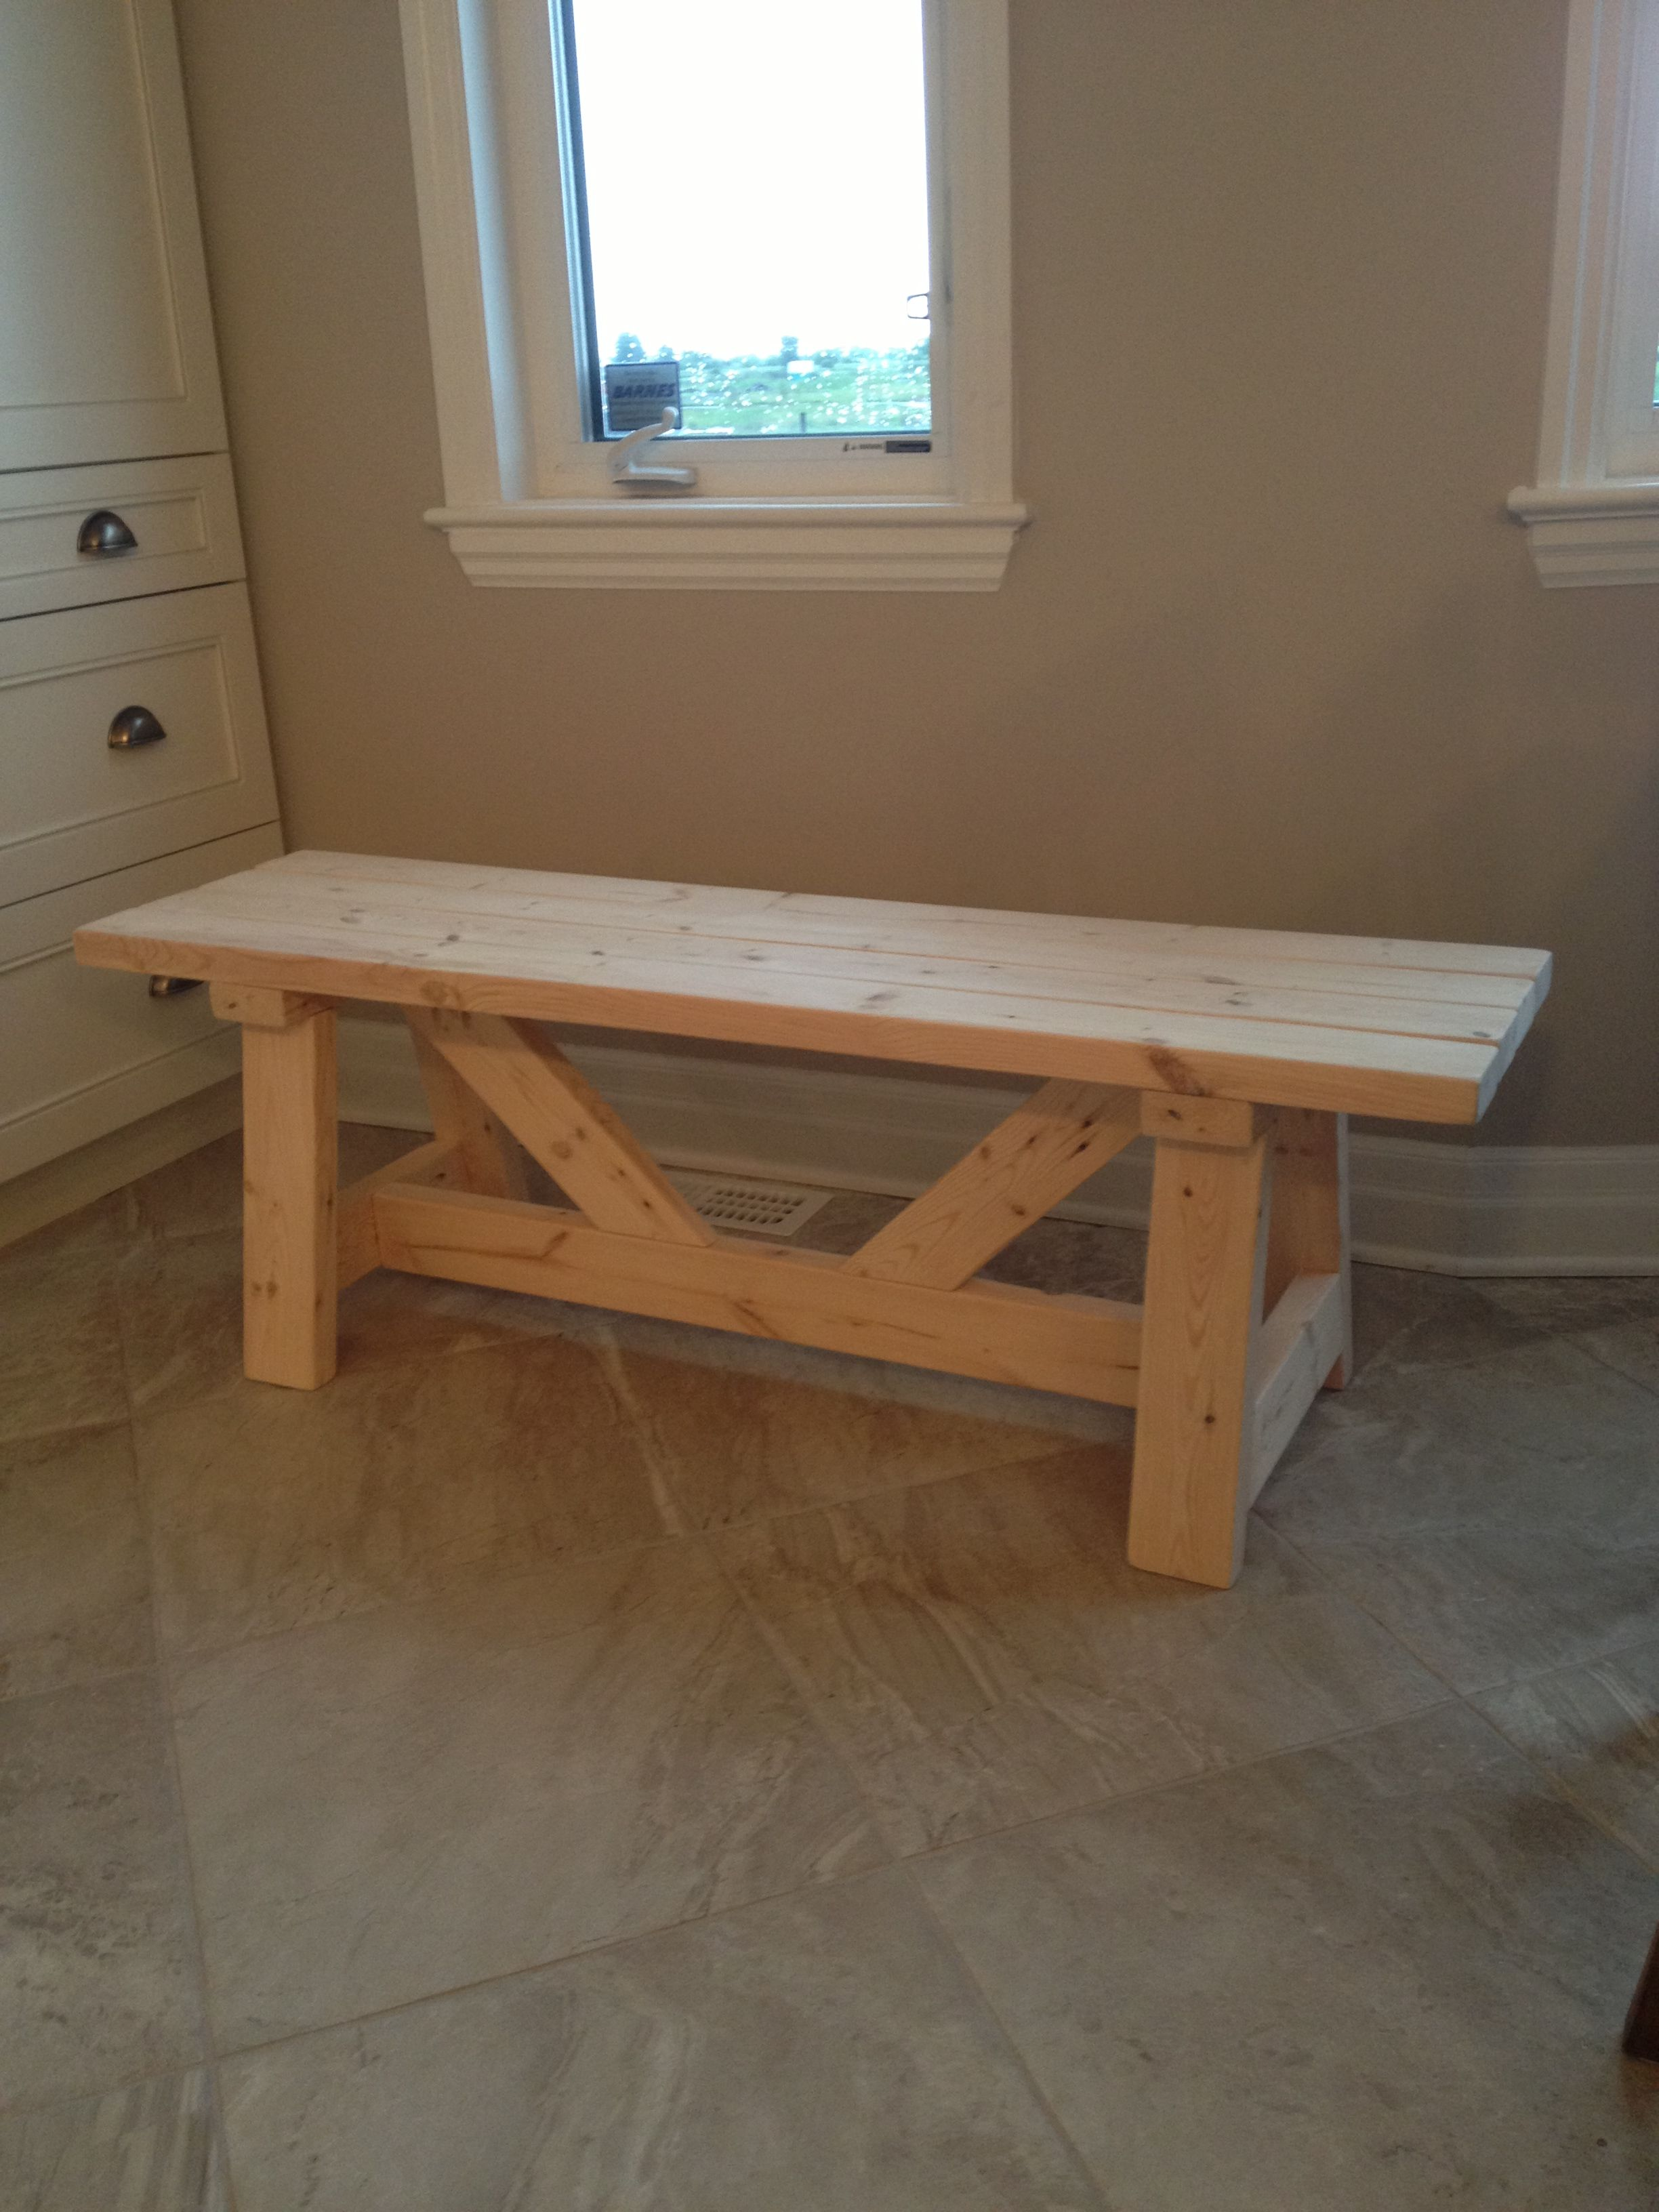 Stupendous Farmhouse Bench In 1 Day Do It Yourself Home Projects From Camellatalisay Diy Chair Ideas Camellatalisaycom